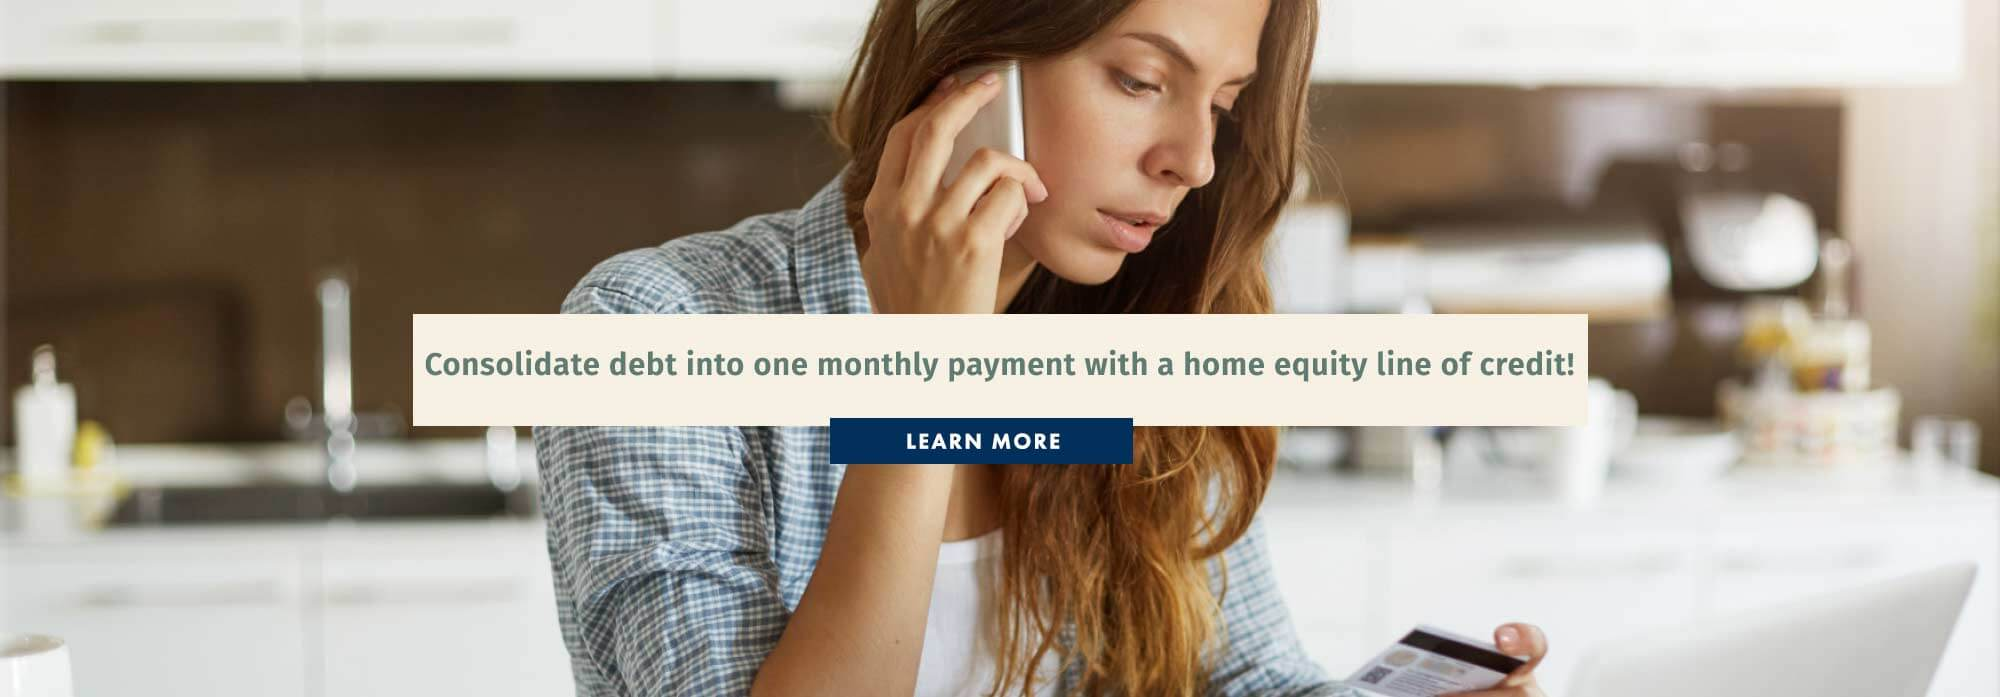 Consolidate debt into one monthly payment with a home equity line of credit!